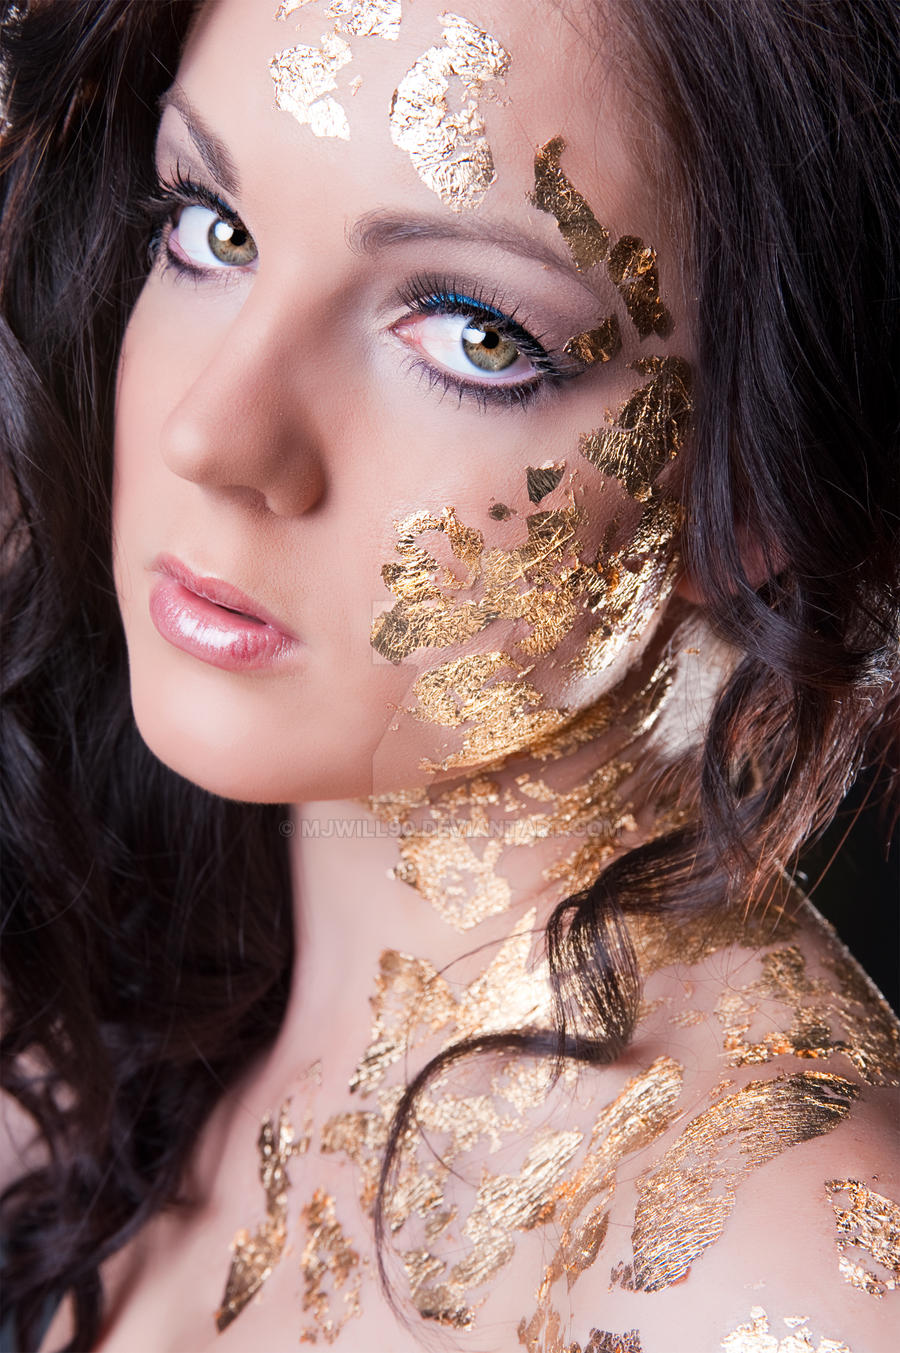 Bianca S Gold Leaf Makeup By Mjwill90